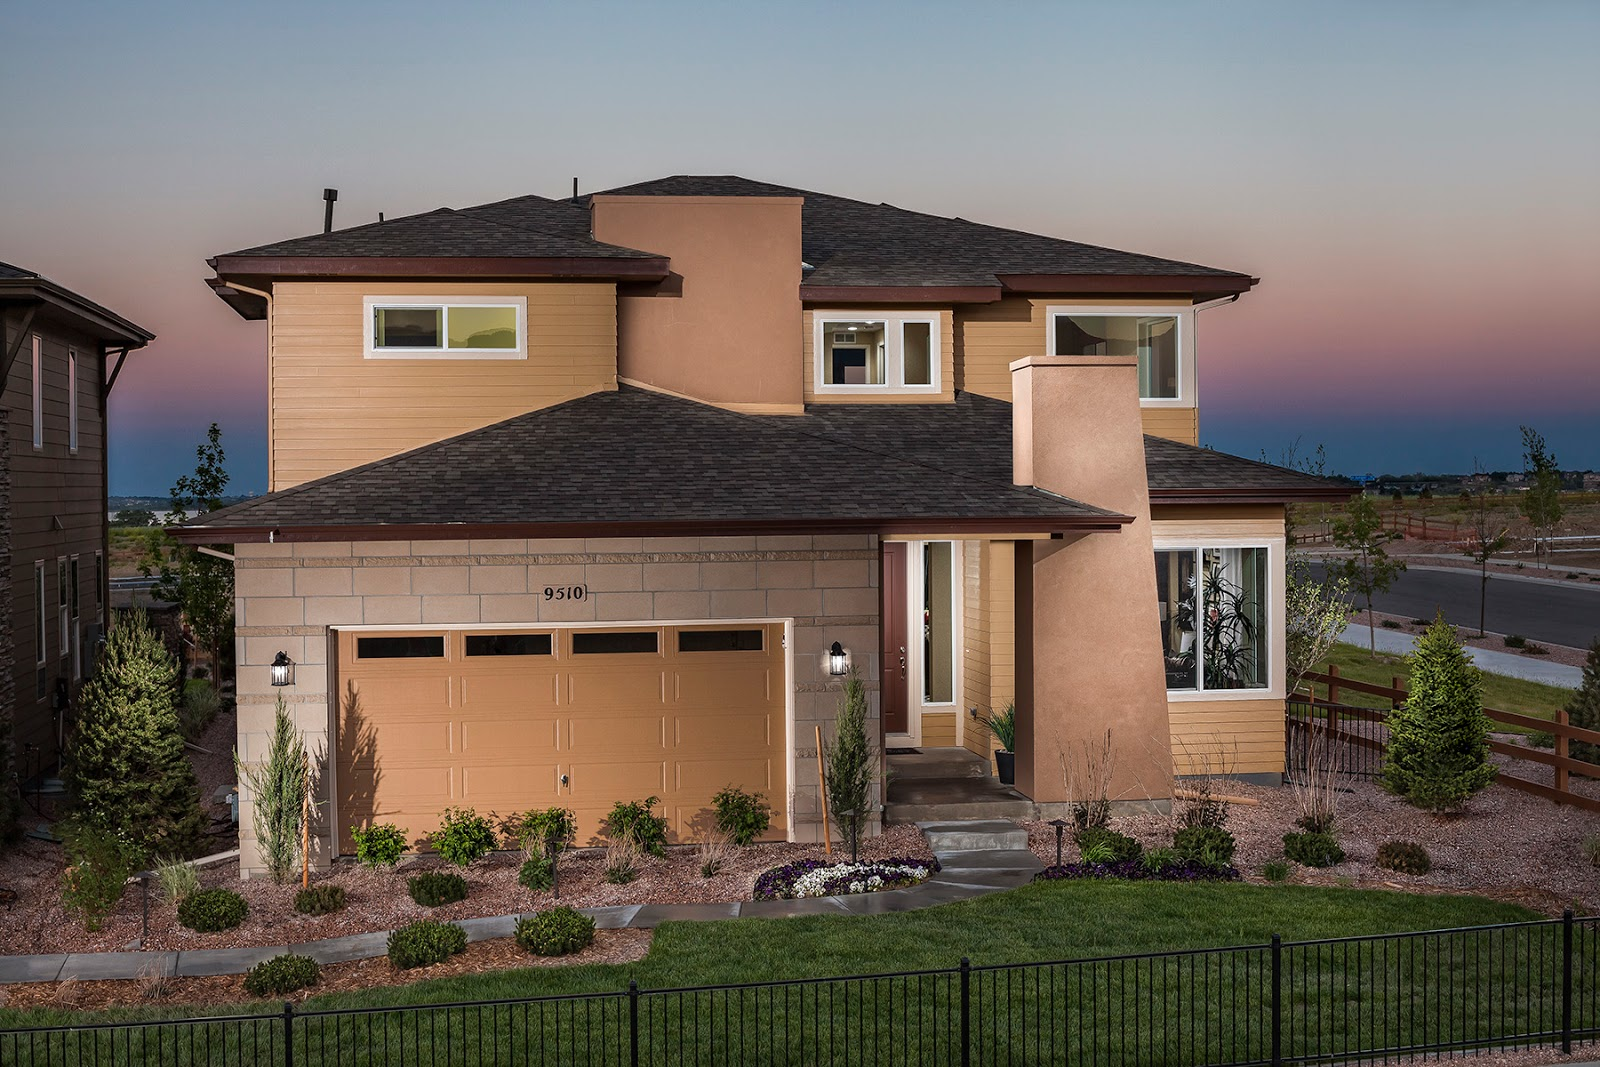 This beautiful modern home built by century communities at candelas in aurora is in the running for detached home of the year